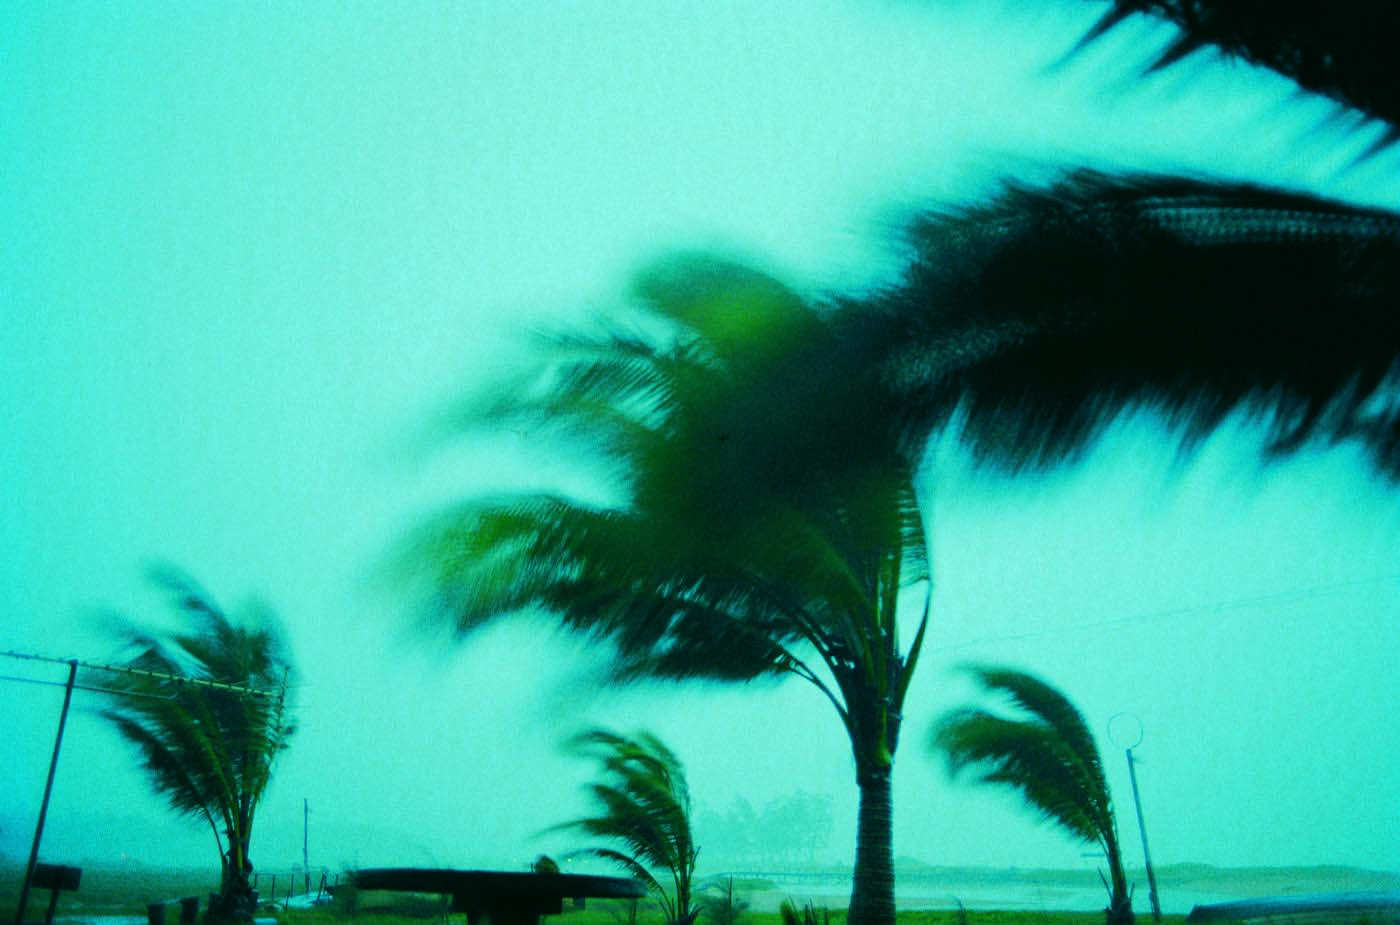 a blurry image of a palm tree